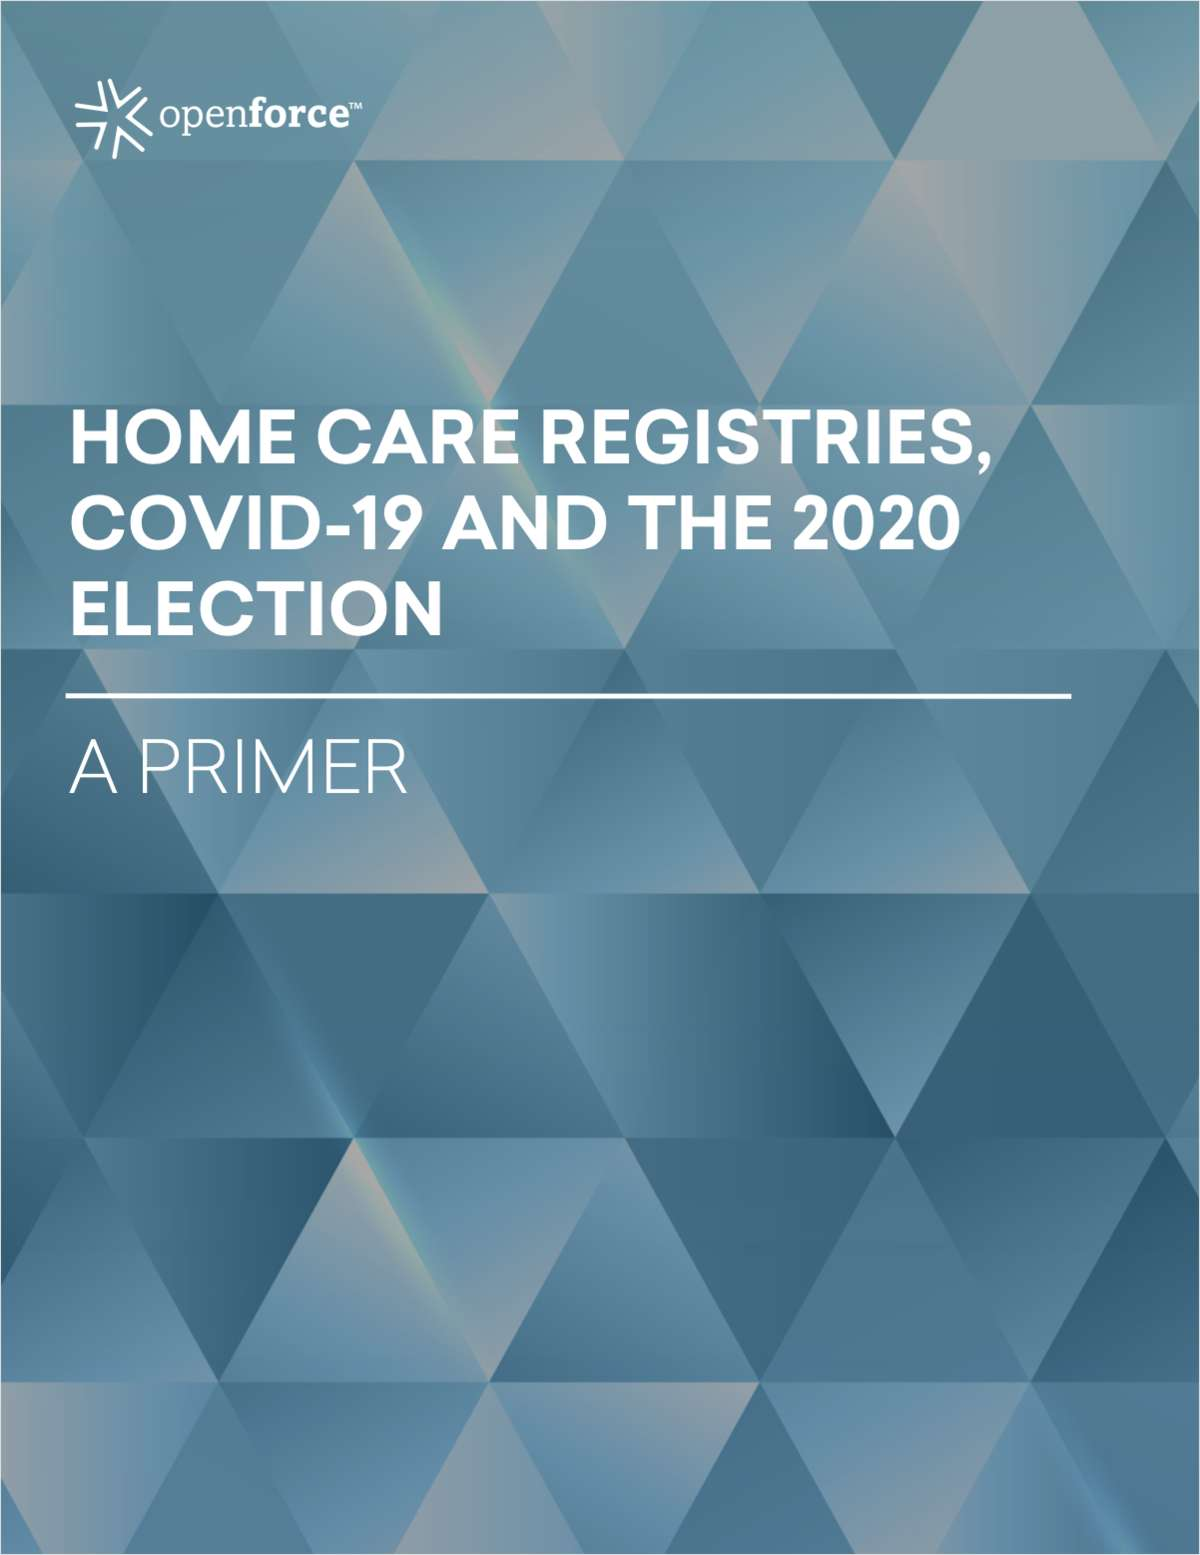 Home care registries, COVID-19 and the 2020 election: A primer